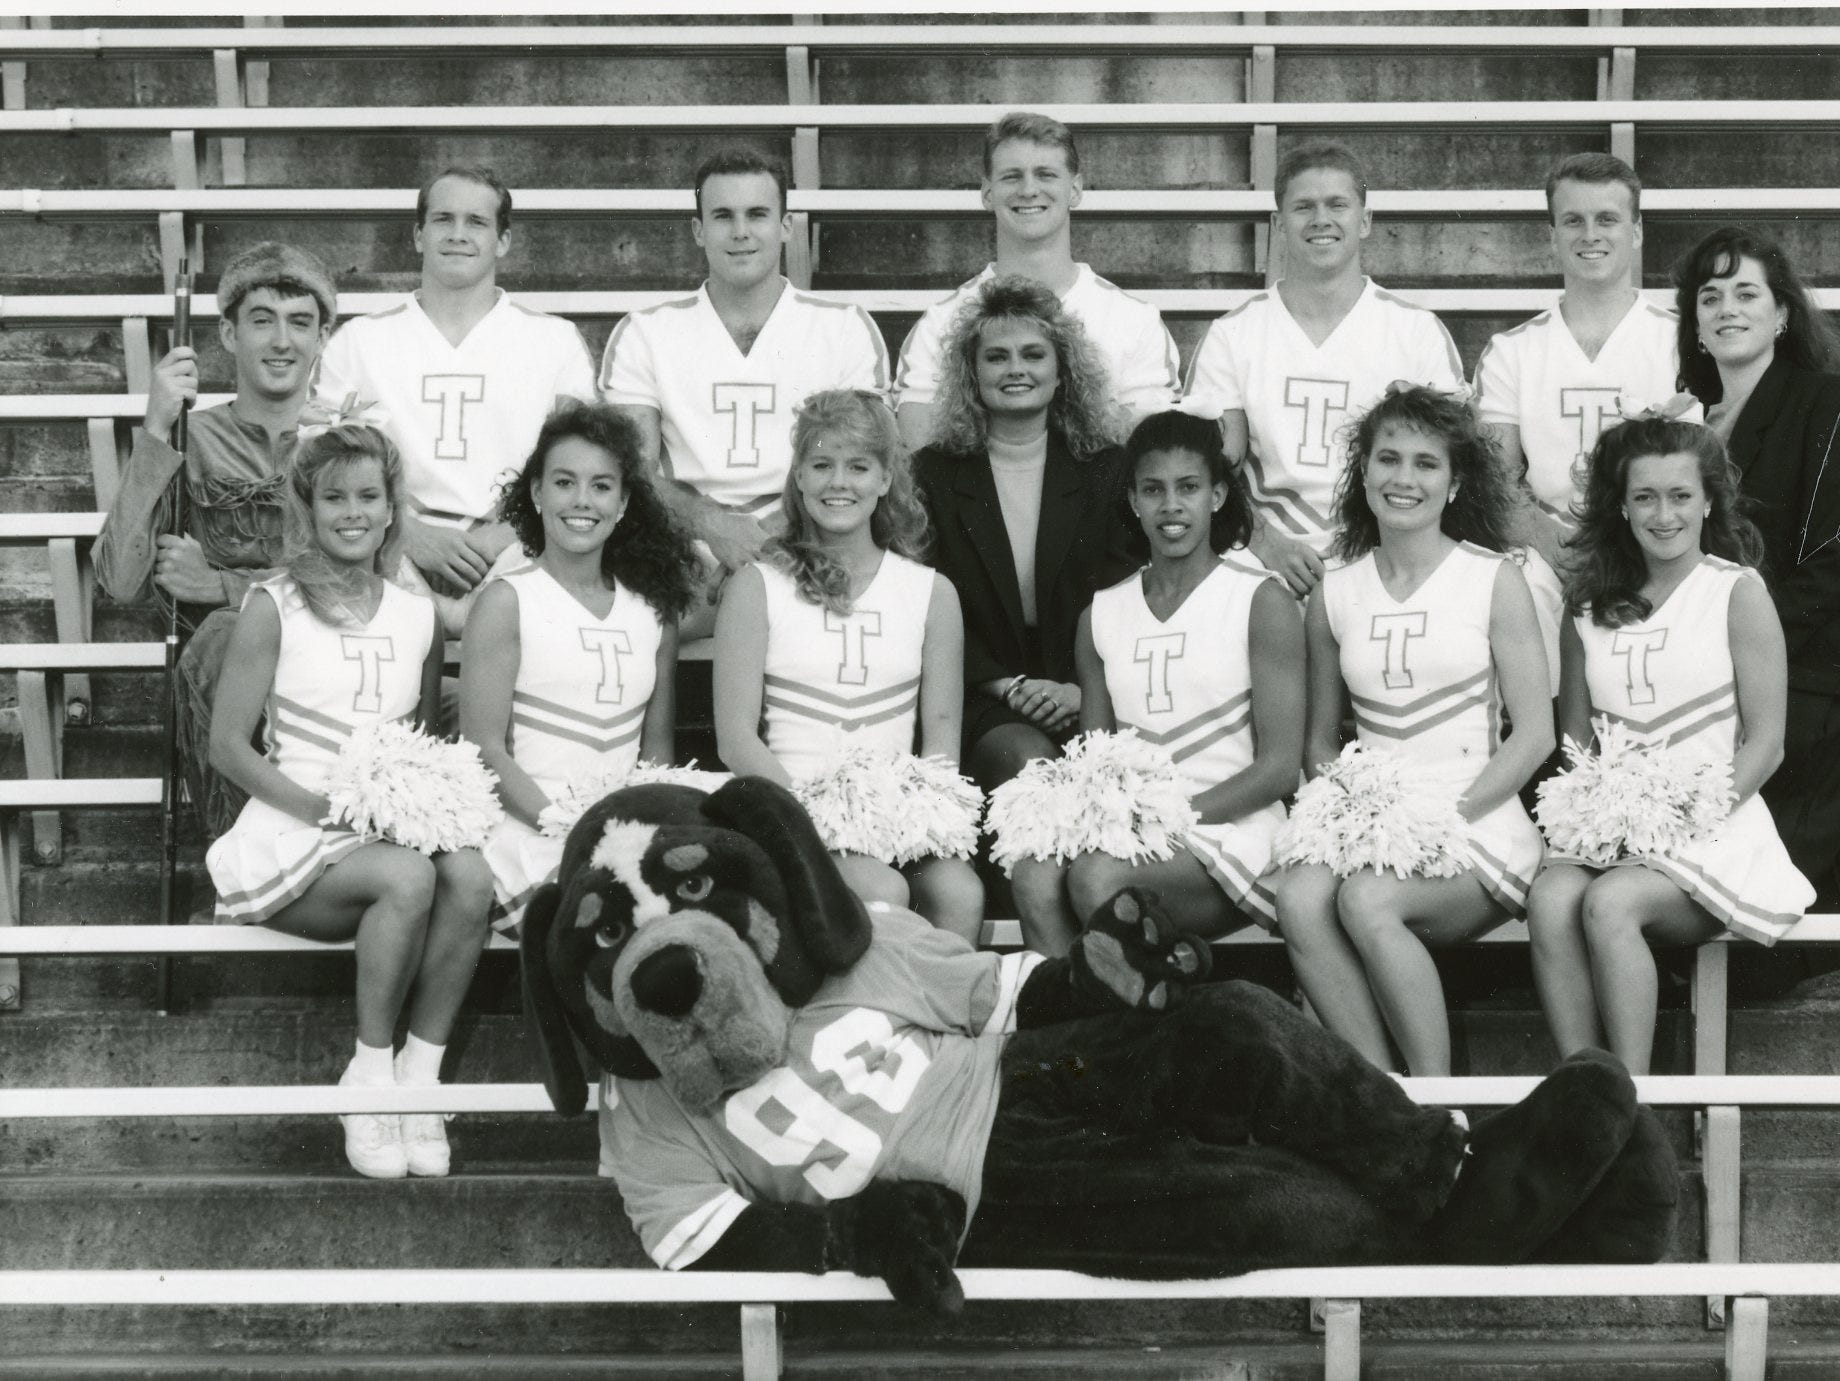 University of Tennessee, 1993 cheer team. Smokey, Christopher Broyles; (first row) Pam Peters, Andra Cureton, Keleah Sturdivant, Jennifer McGee, Gloria Blevins, Kyla Parker; (second row) the Volunteer Jeff Cathey, coach Joy Postell, Susie Gorman, spirit coordinator; (third row) Kirk Graves, Simuel Howell, Paul Cox, Gabe Hannah, Stephen Davis. Not pictured are Joel Gragale, Brock Lodge and Weston O'Dell.